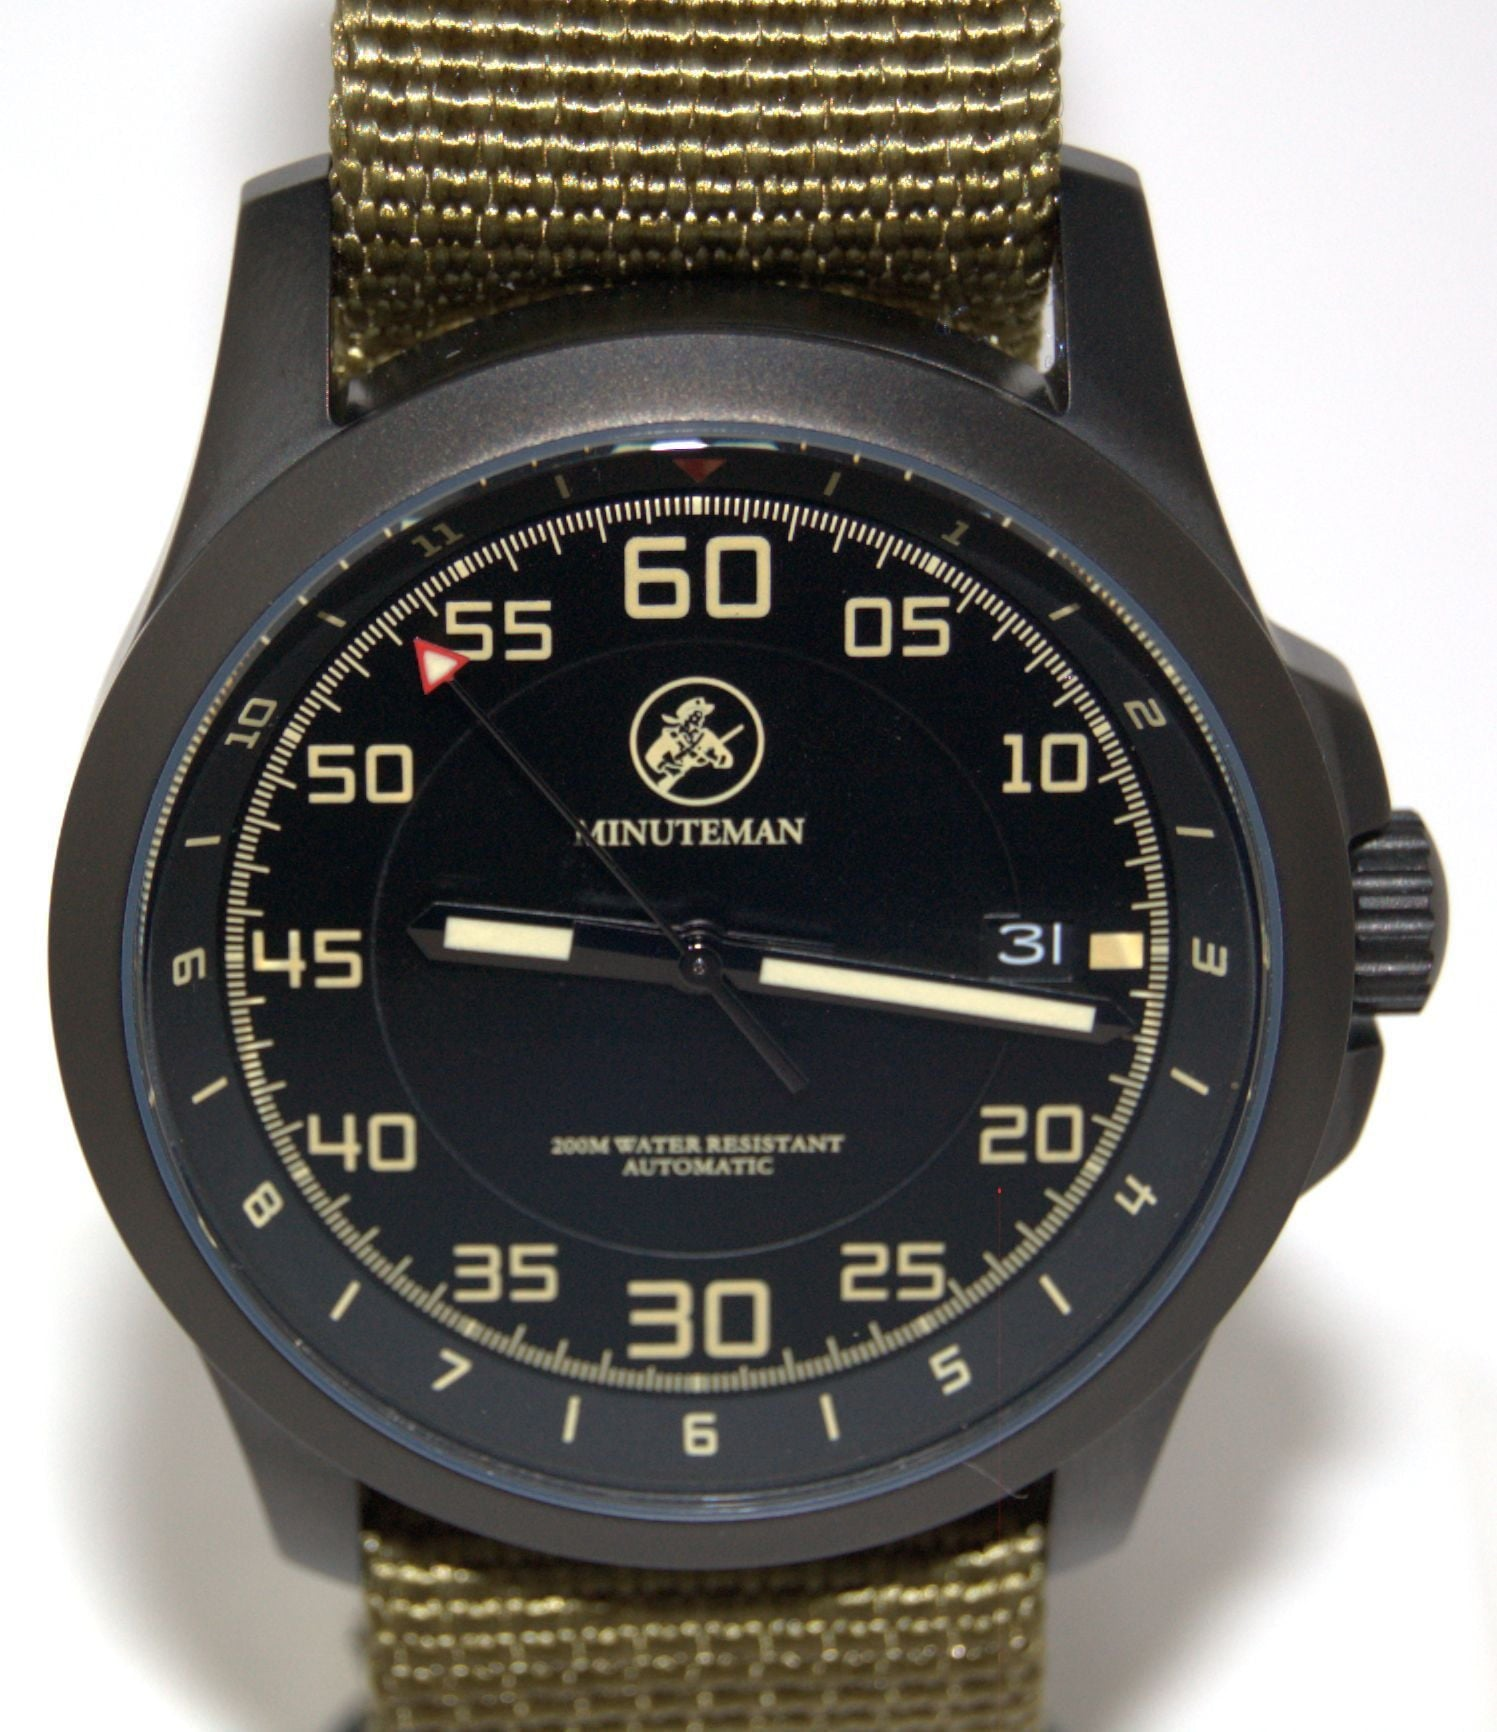 Minuteman  Bravo DLC Finish USA assembled wristwatch,minutemanwatches,Minuteman,Wrist Watch